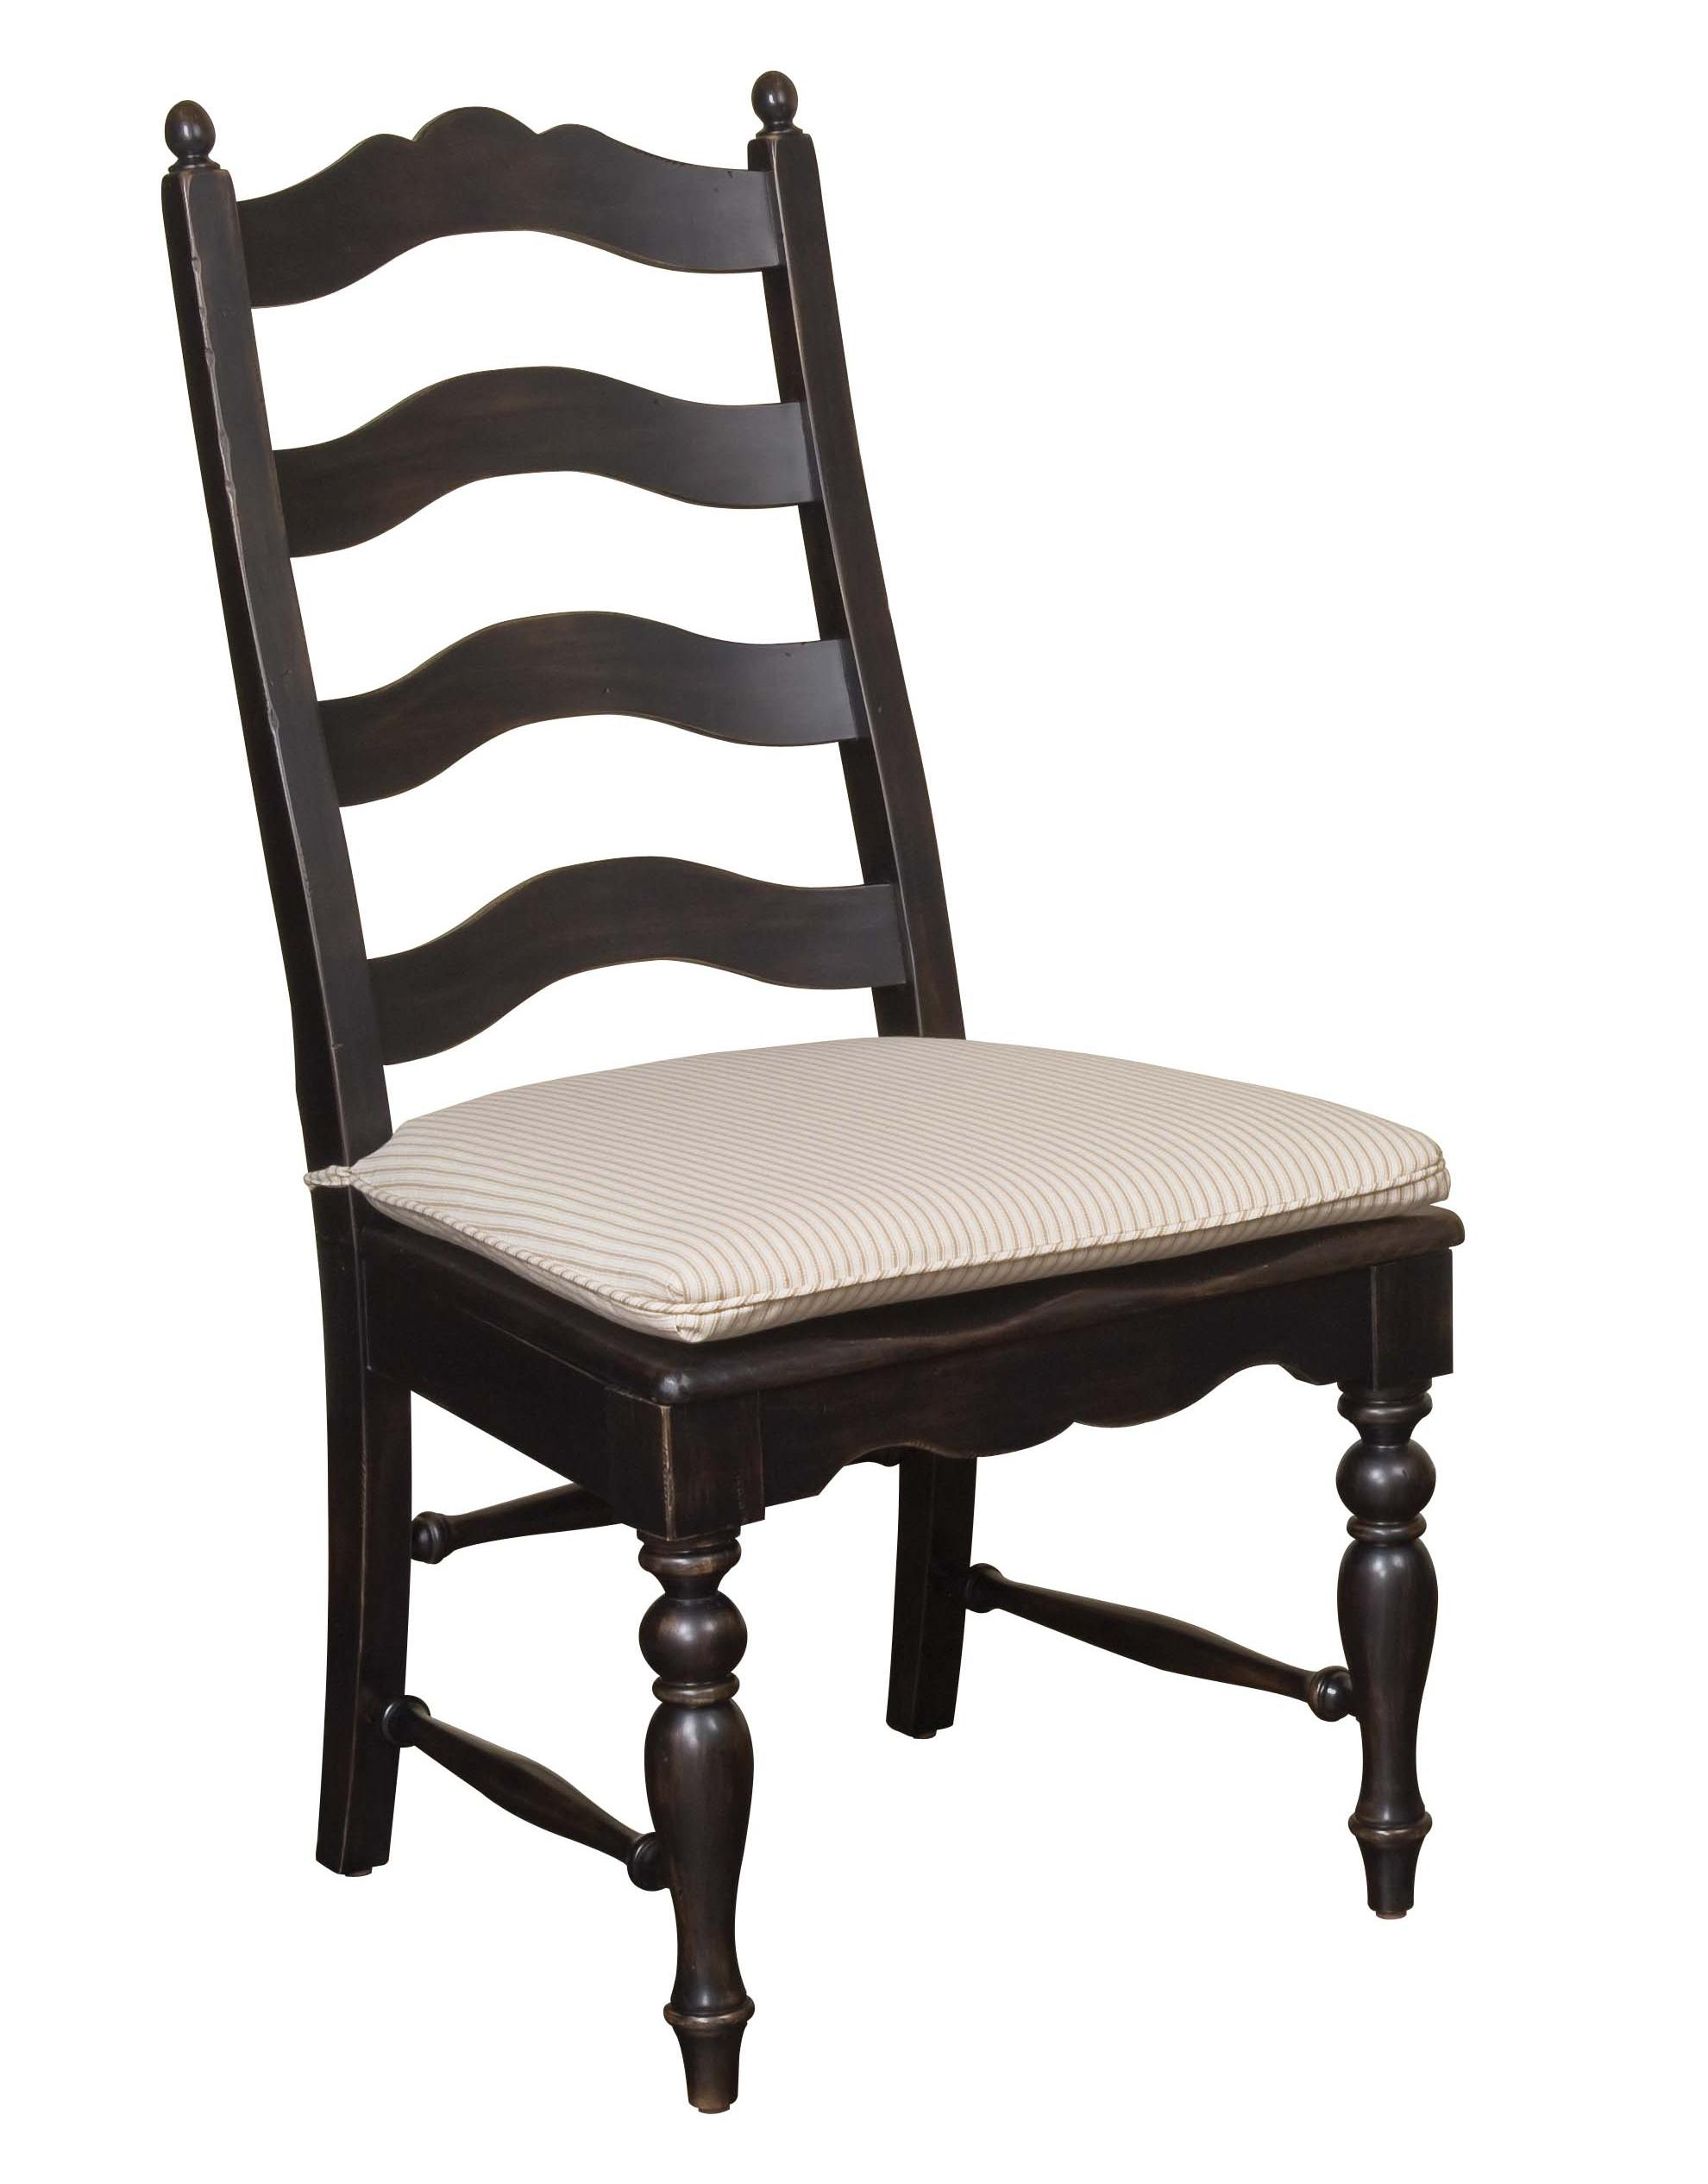 Very Impressive portraiture of Ladder Back Chairs. Rush Seats With Upholstered Seat Cushions And  with #756556 color and 1980x2532 pixels